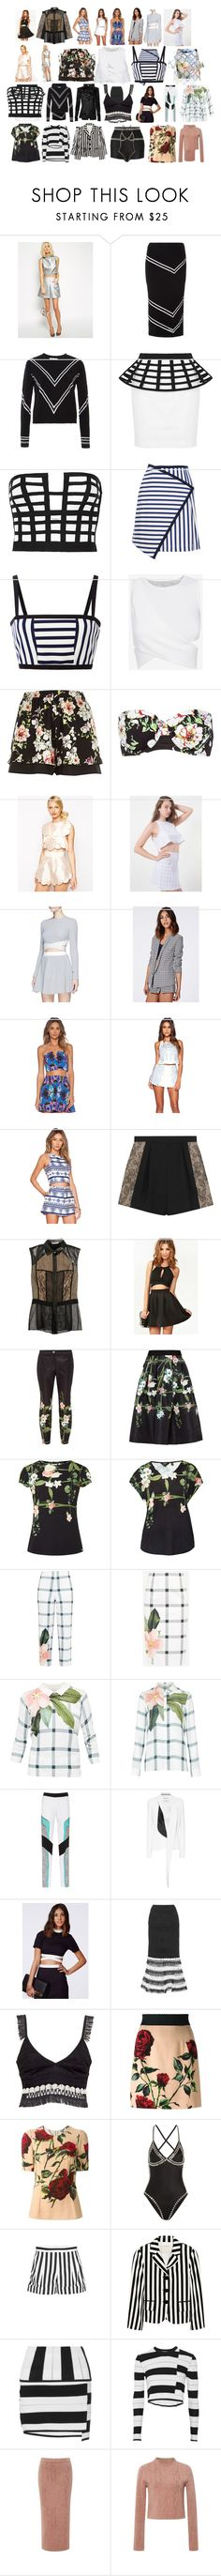 """match 5"" by sassy-smart-assy-nerd ❤ liked on Polyvore featuring ASOS, Tanya Taylor, sass & bide, Preen, Jonathan Simkhai, River Island, Alice McCall, Elizabeth and James, Missguided and NBD"